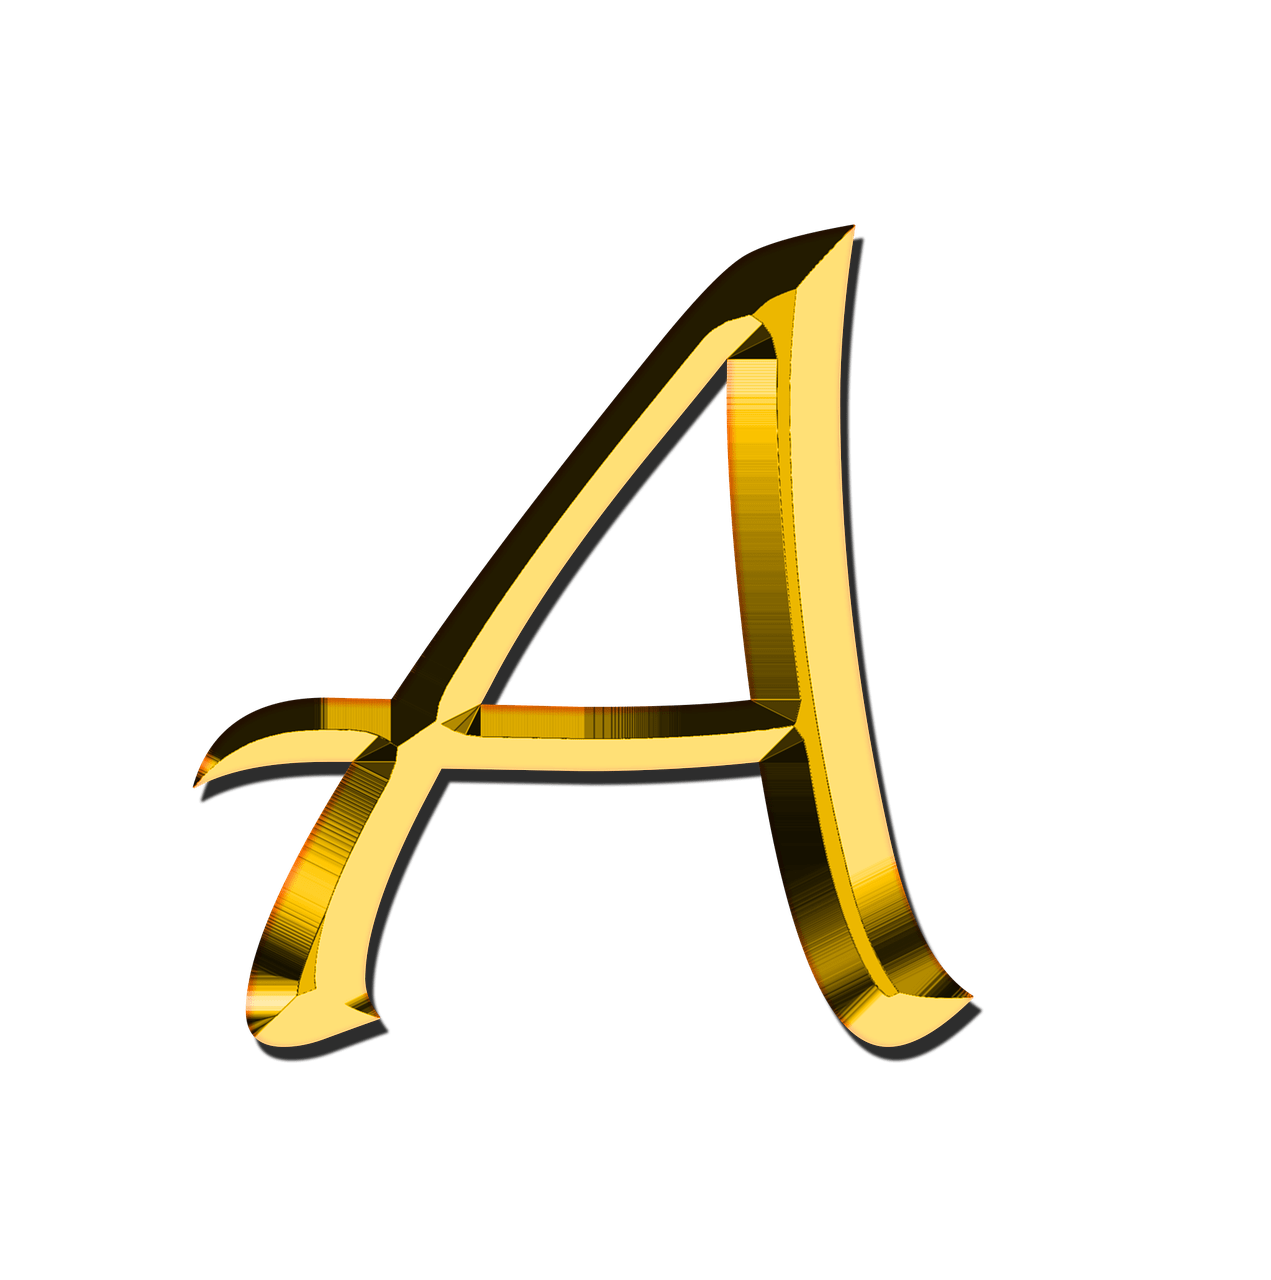 capital letter a png